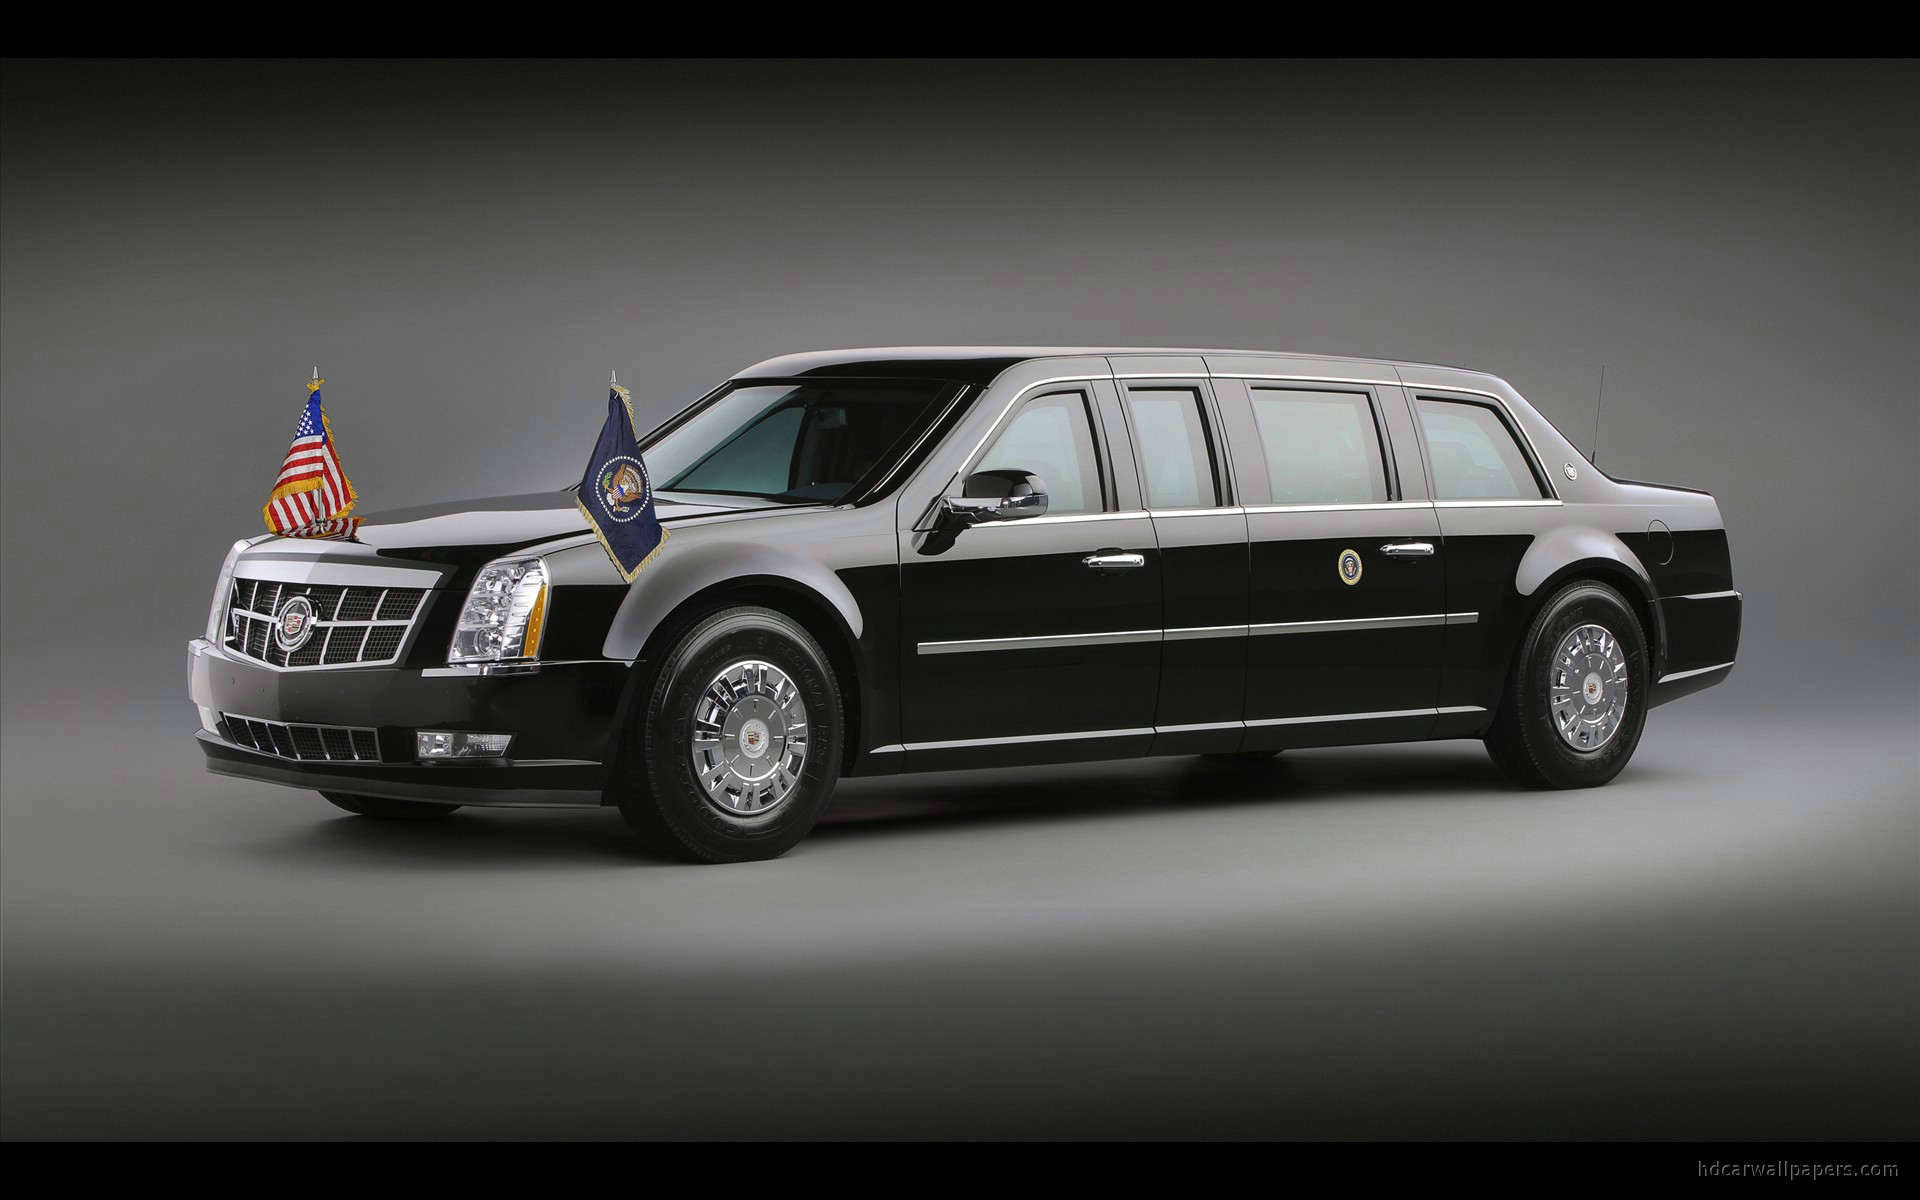 2009 Cadillac Presidential Limousine Wallpaper Hd Car Wallpapers